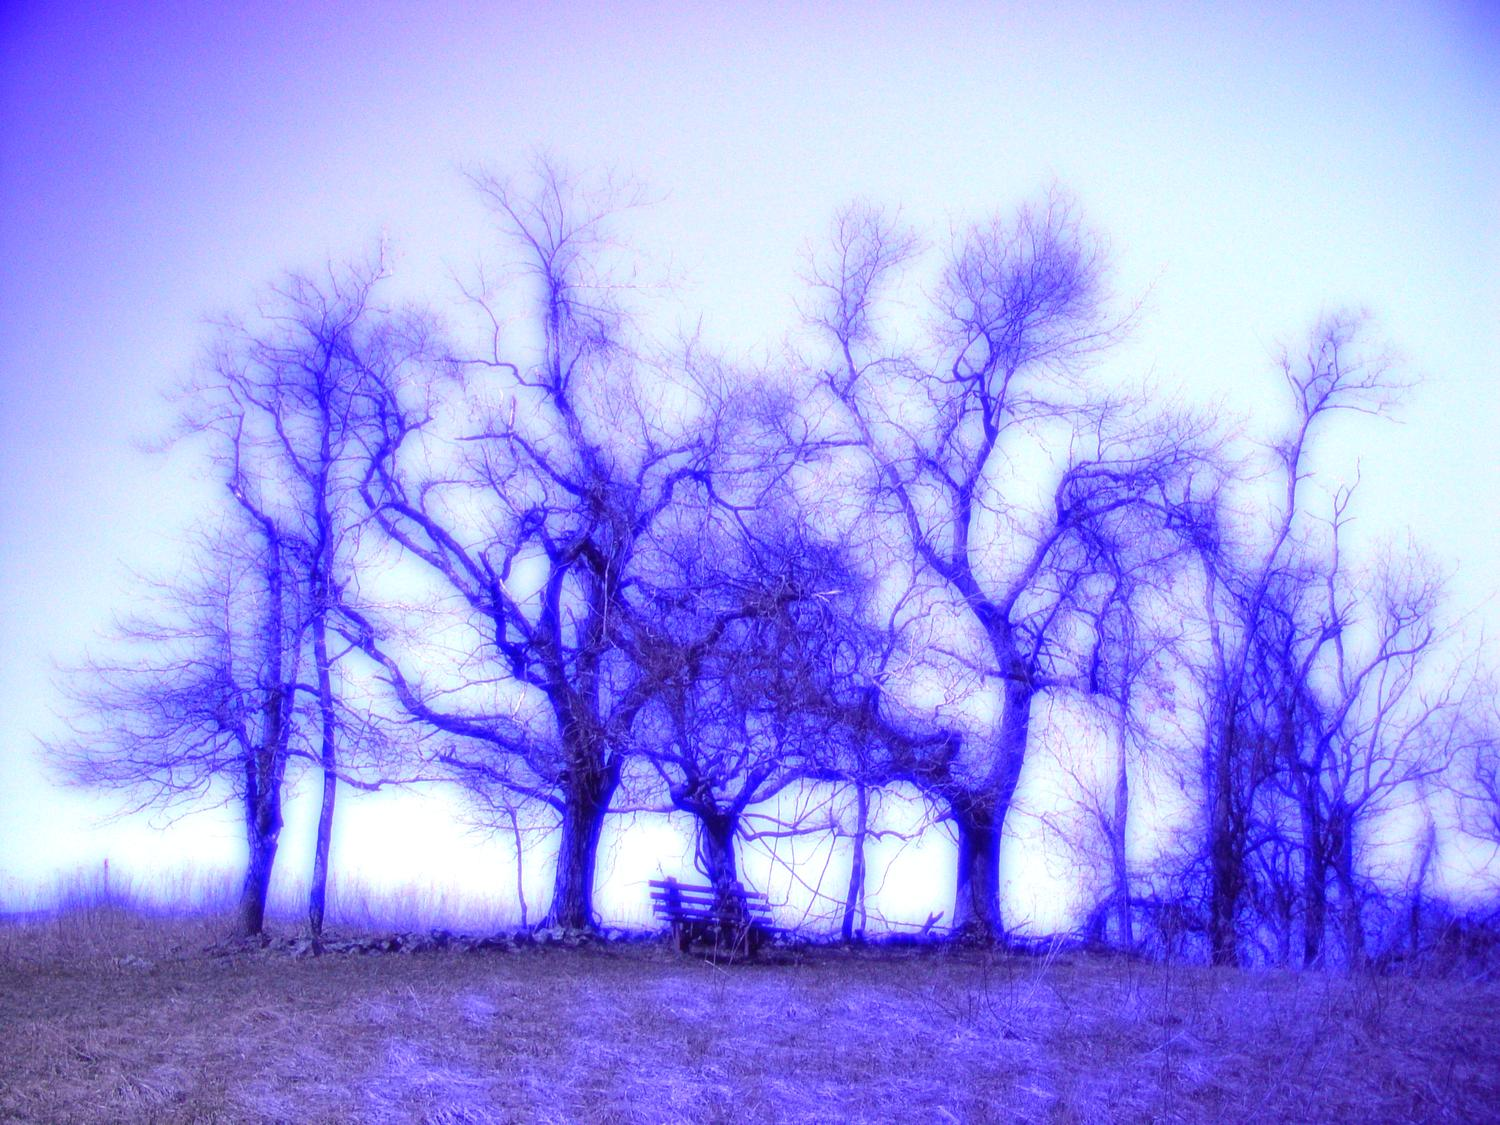 trees, Sky Meadows, by Tony Karp - Dancing Trees - Techno-Impressionist Museum - Techno-Impressionism - art - beautiful - photo photography picture - by Tony Karp